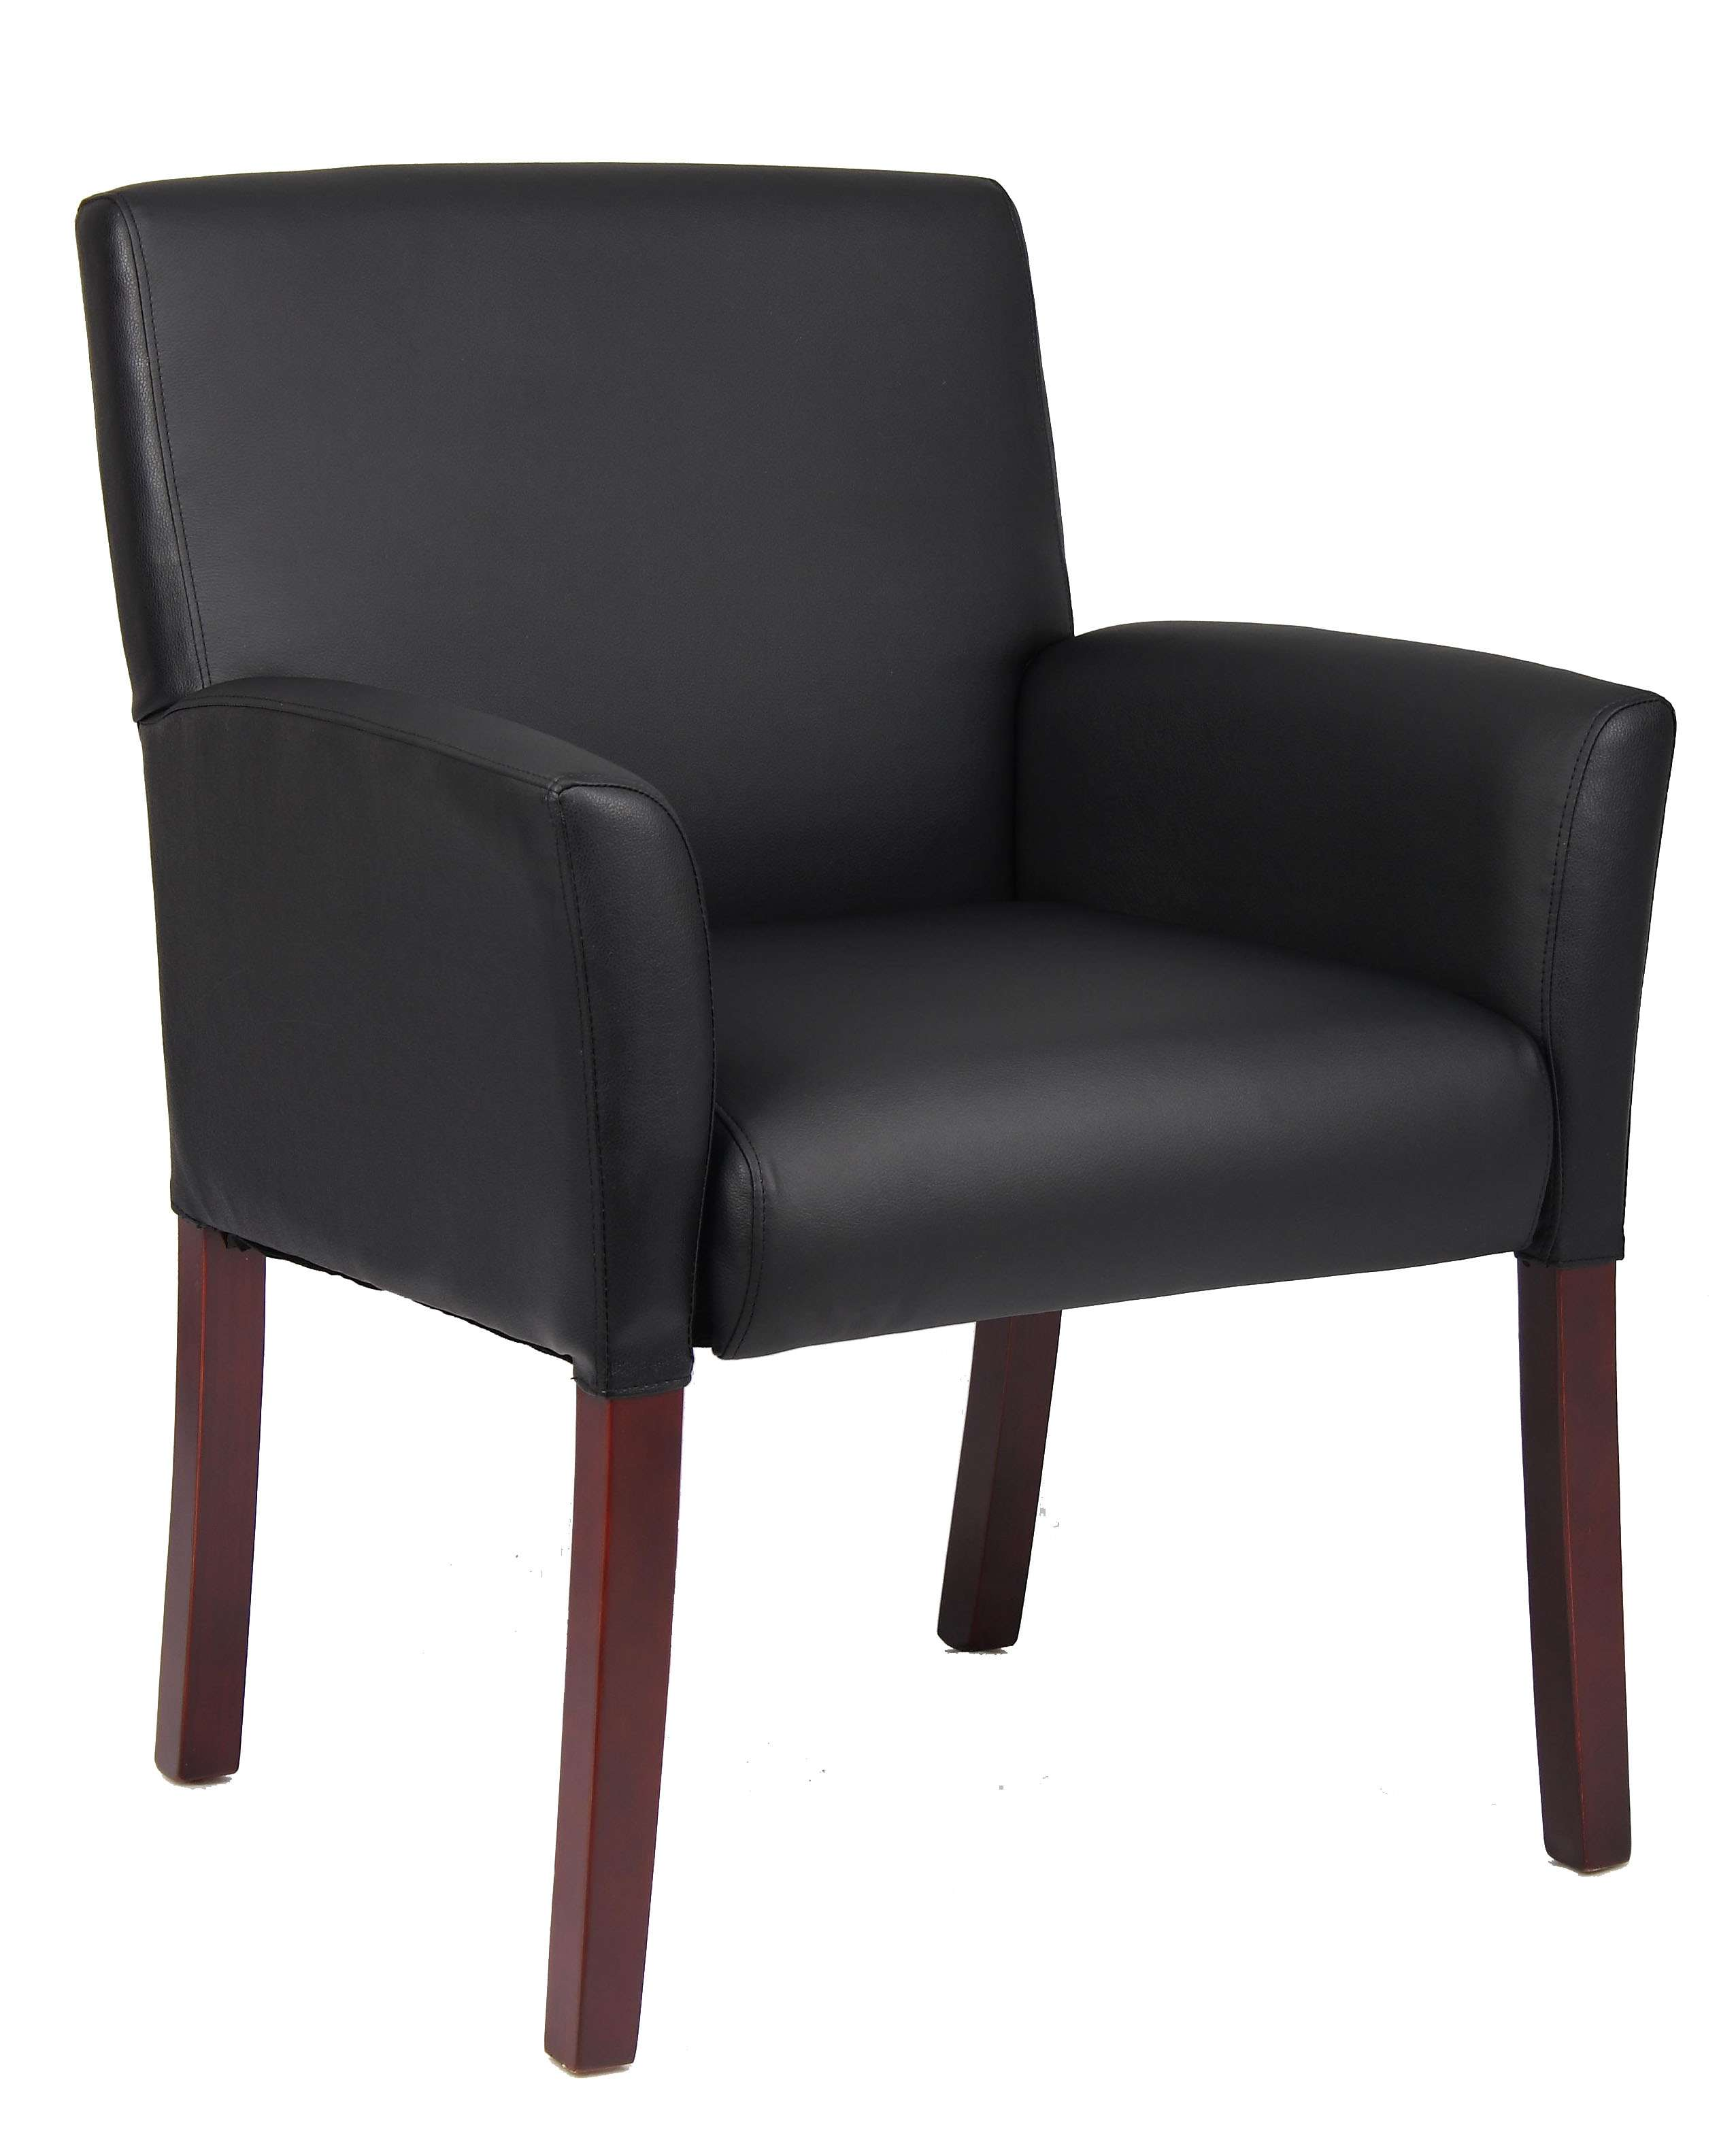 Black Guest Chair In Mahogany Finish